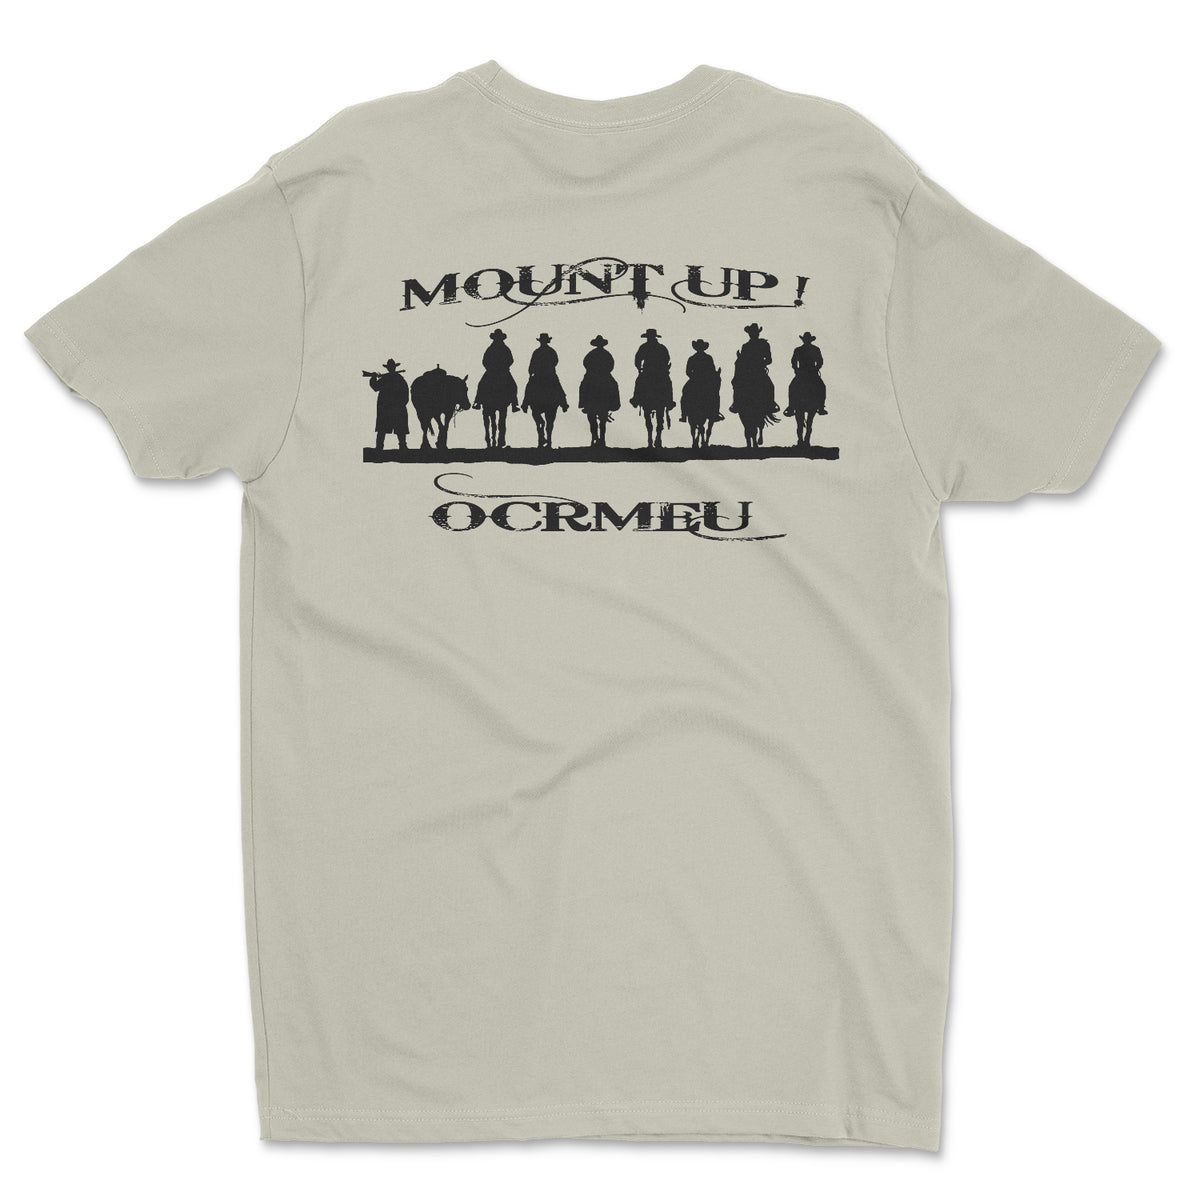 Mounted Unit Tee